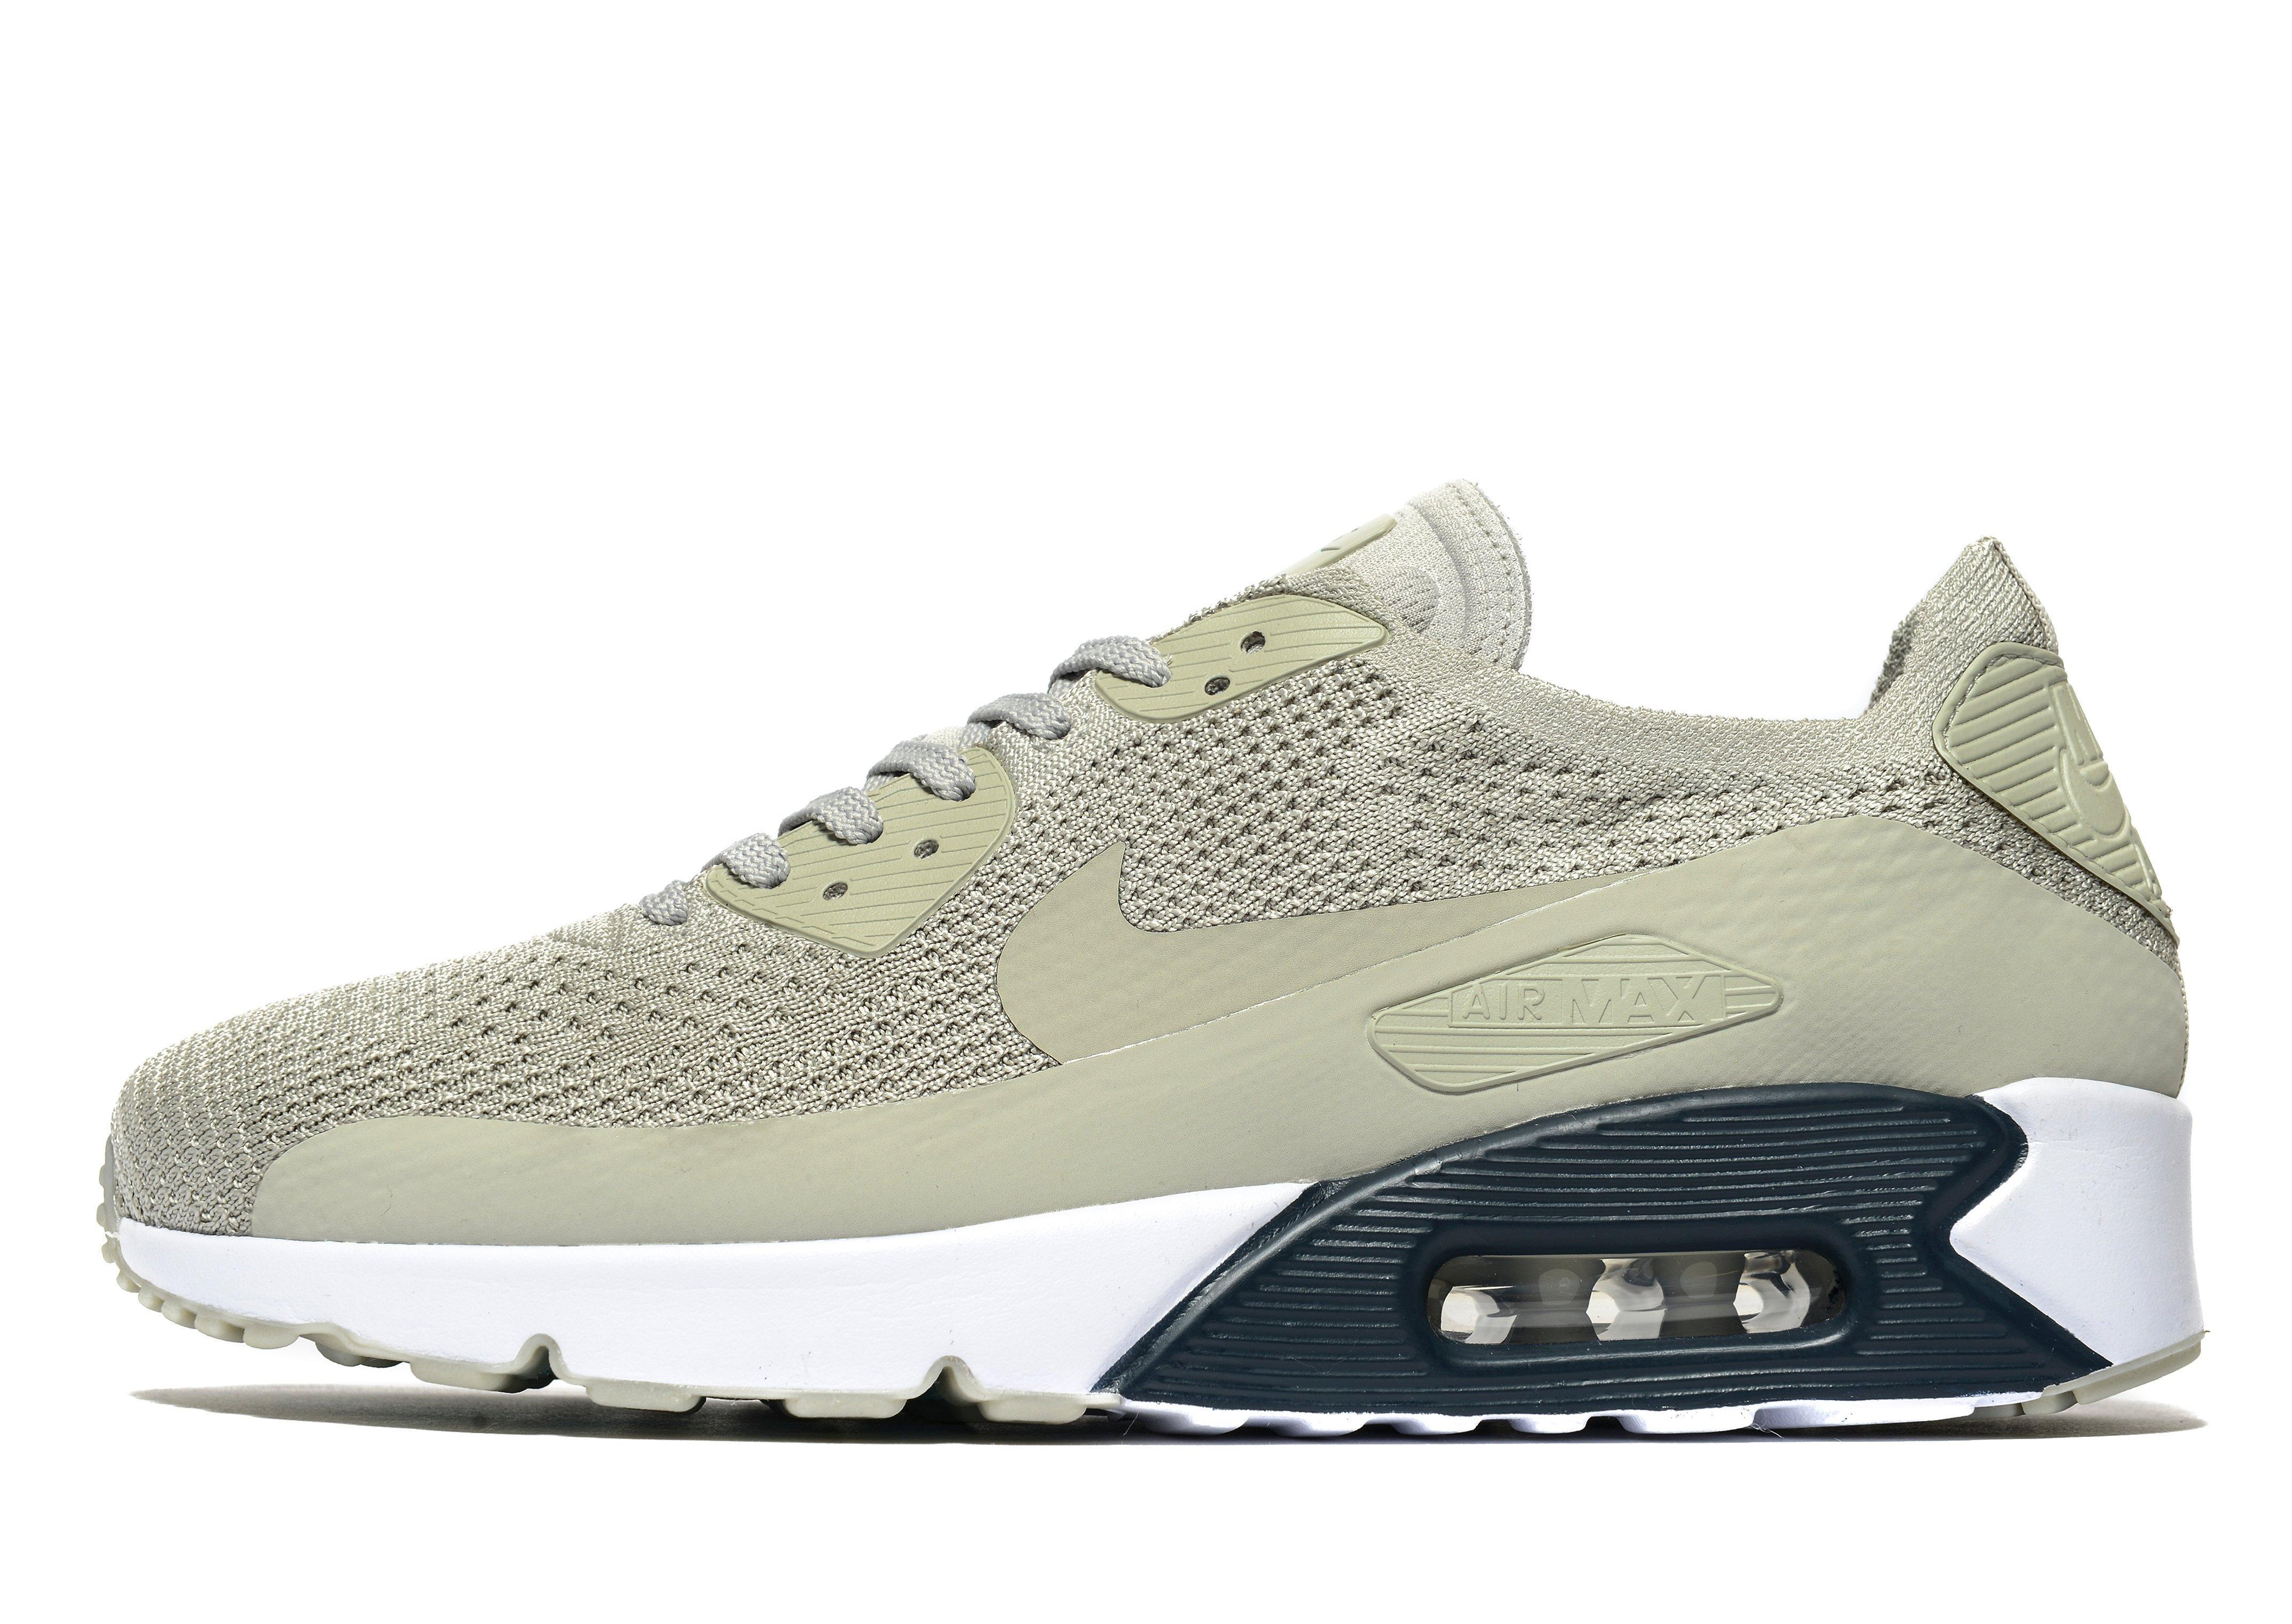 huge discount 66c0c b7fbd czech jd sports drops another exclusive nike air max 95 5b6ab f8dde   clearance nike gray air max 90 flyknit 2.0 for men lyst d4a59 51196